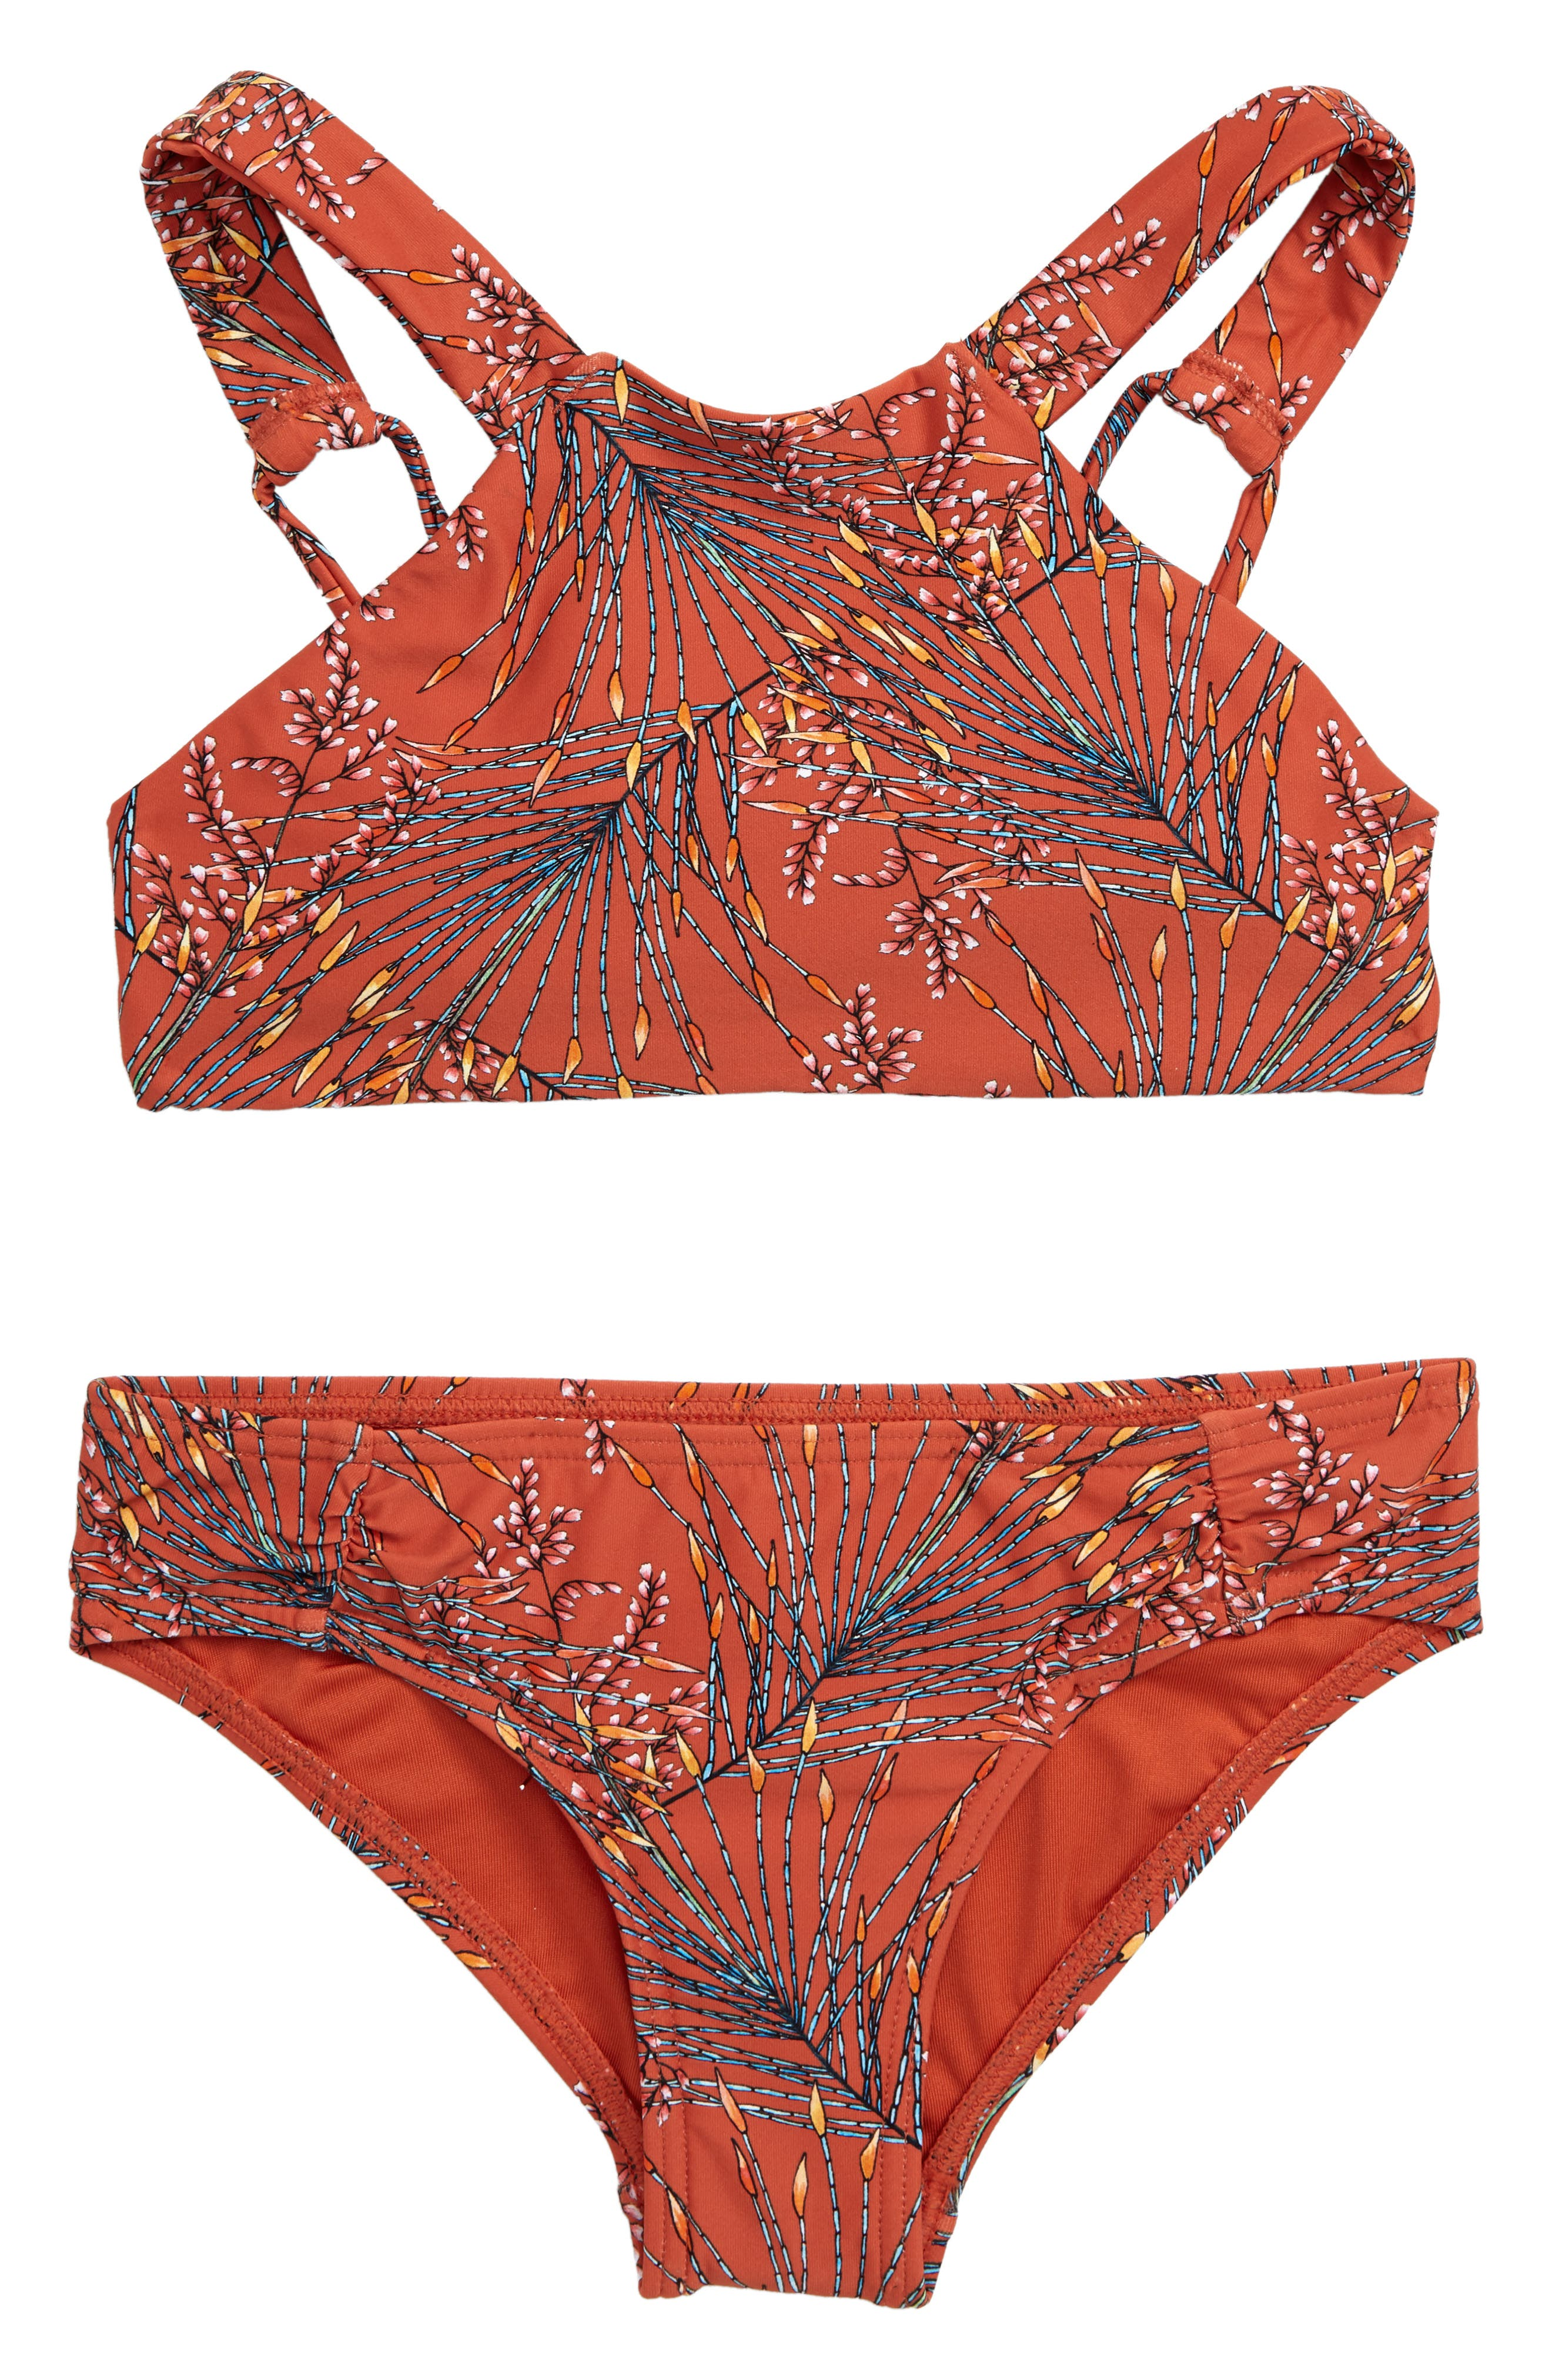 O'NEILL, Prism Two-Piece Halter Swimsuit, Main thumbnail 1, color, KOI